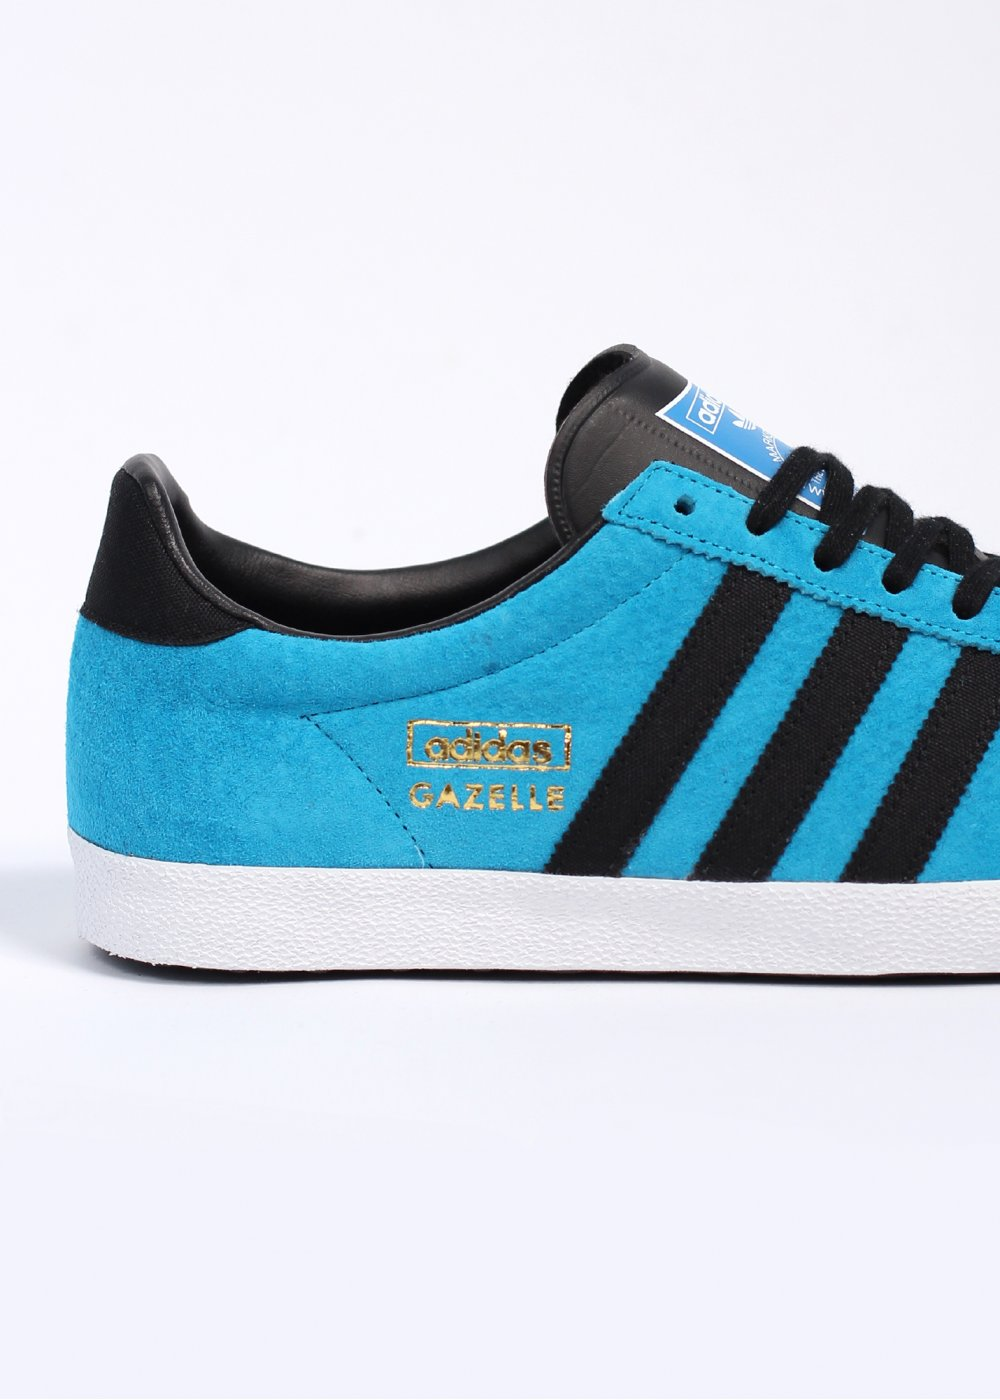 Adidas Originals Gazelle Og Leather Blue